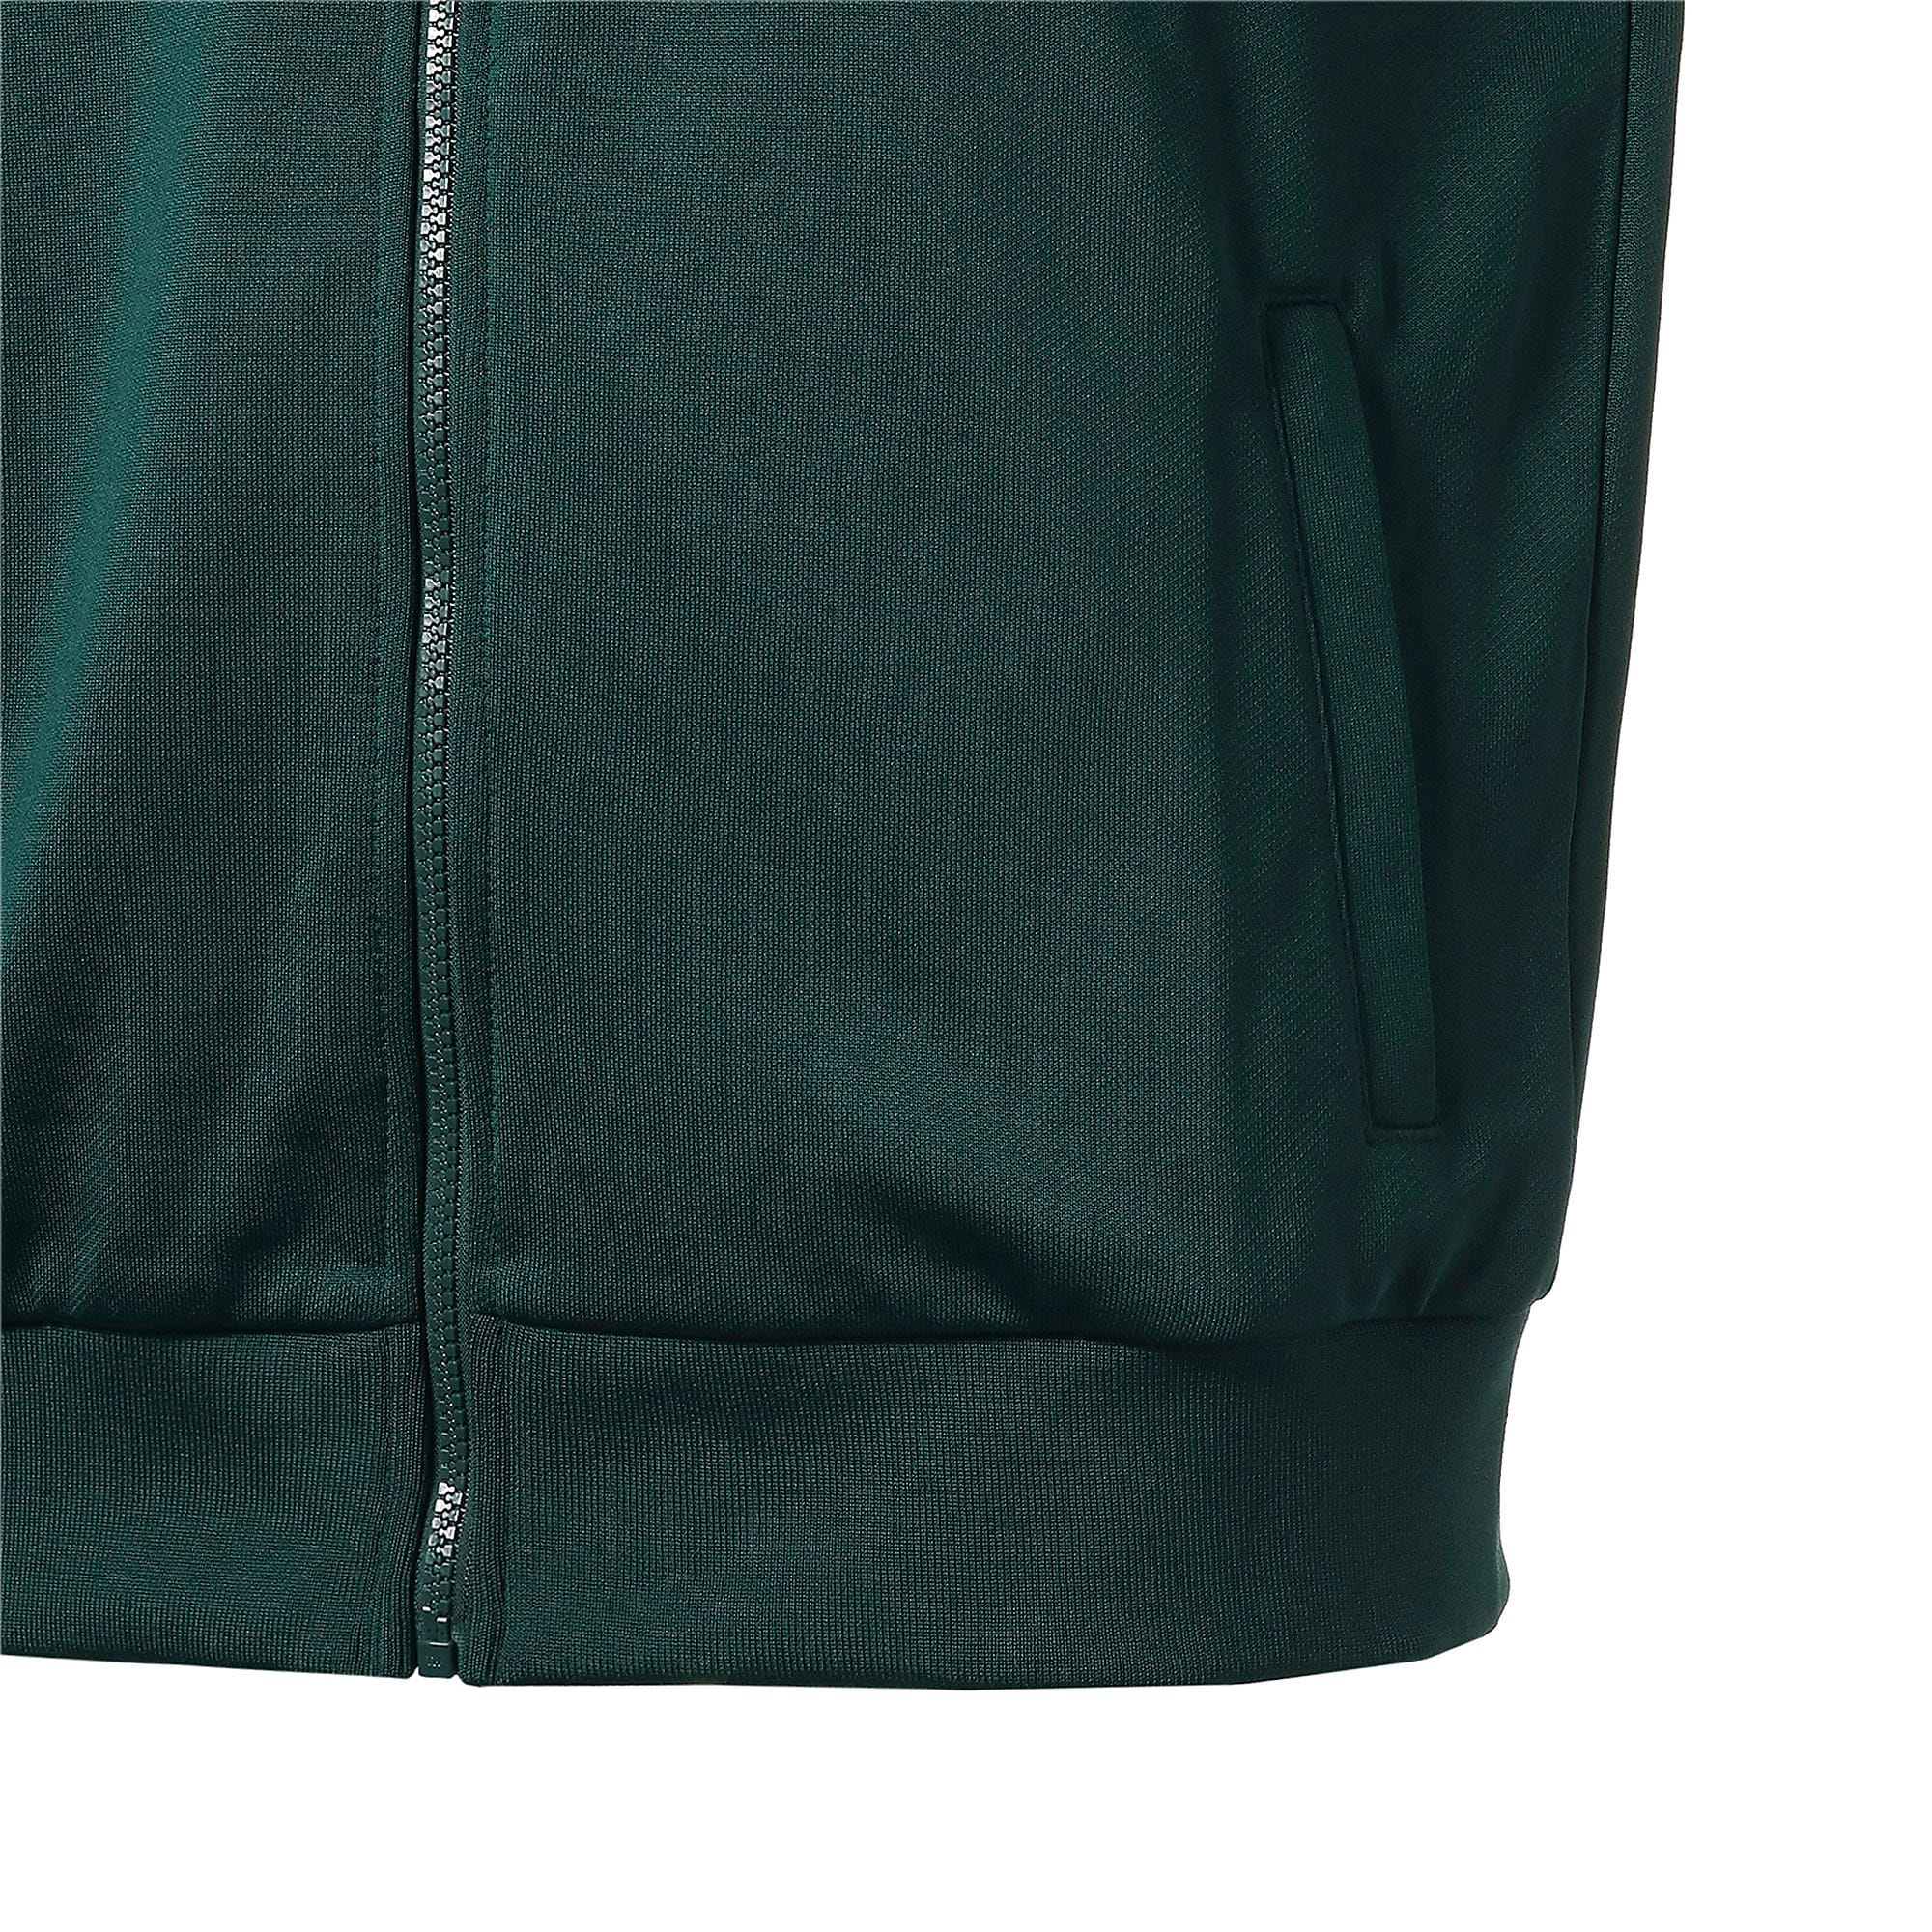 Thumbnail 6 of FIGC イタリア ICONIC MCS トラックジャケット, Ponderosa Pine-Peacoat, medium-JPN